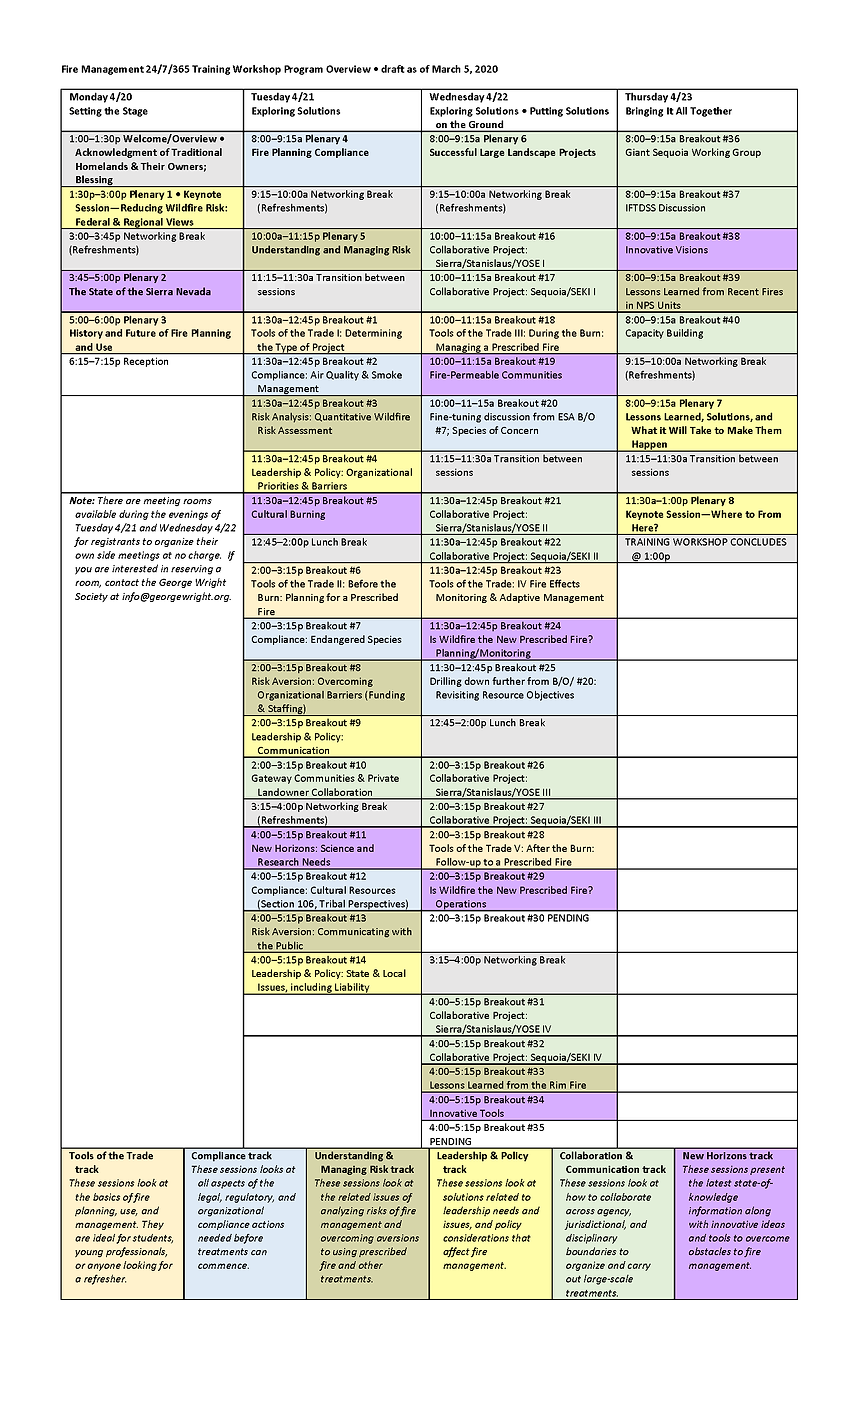 fire_mgmt_program_overview_030520.png